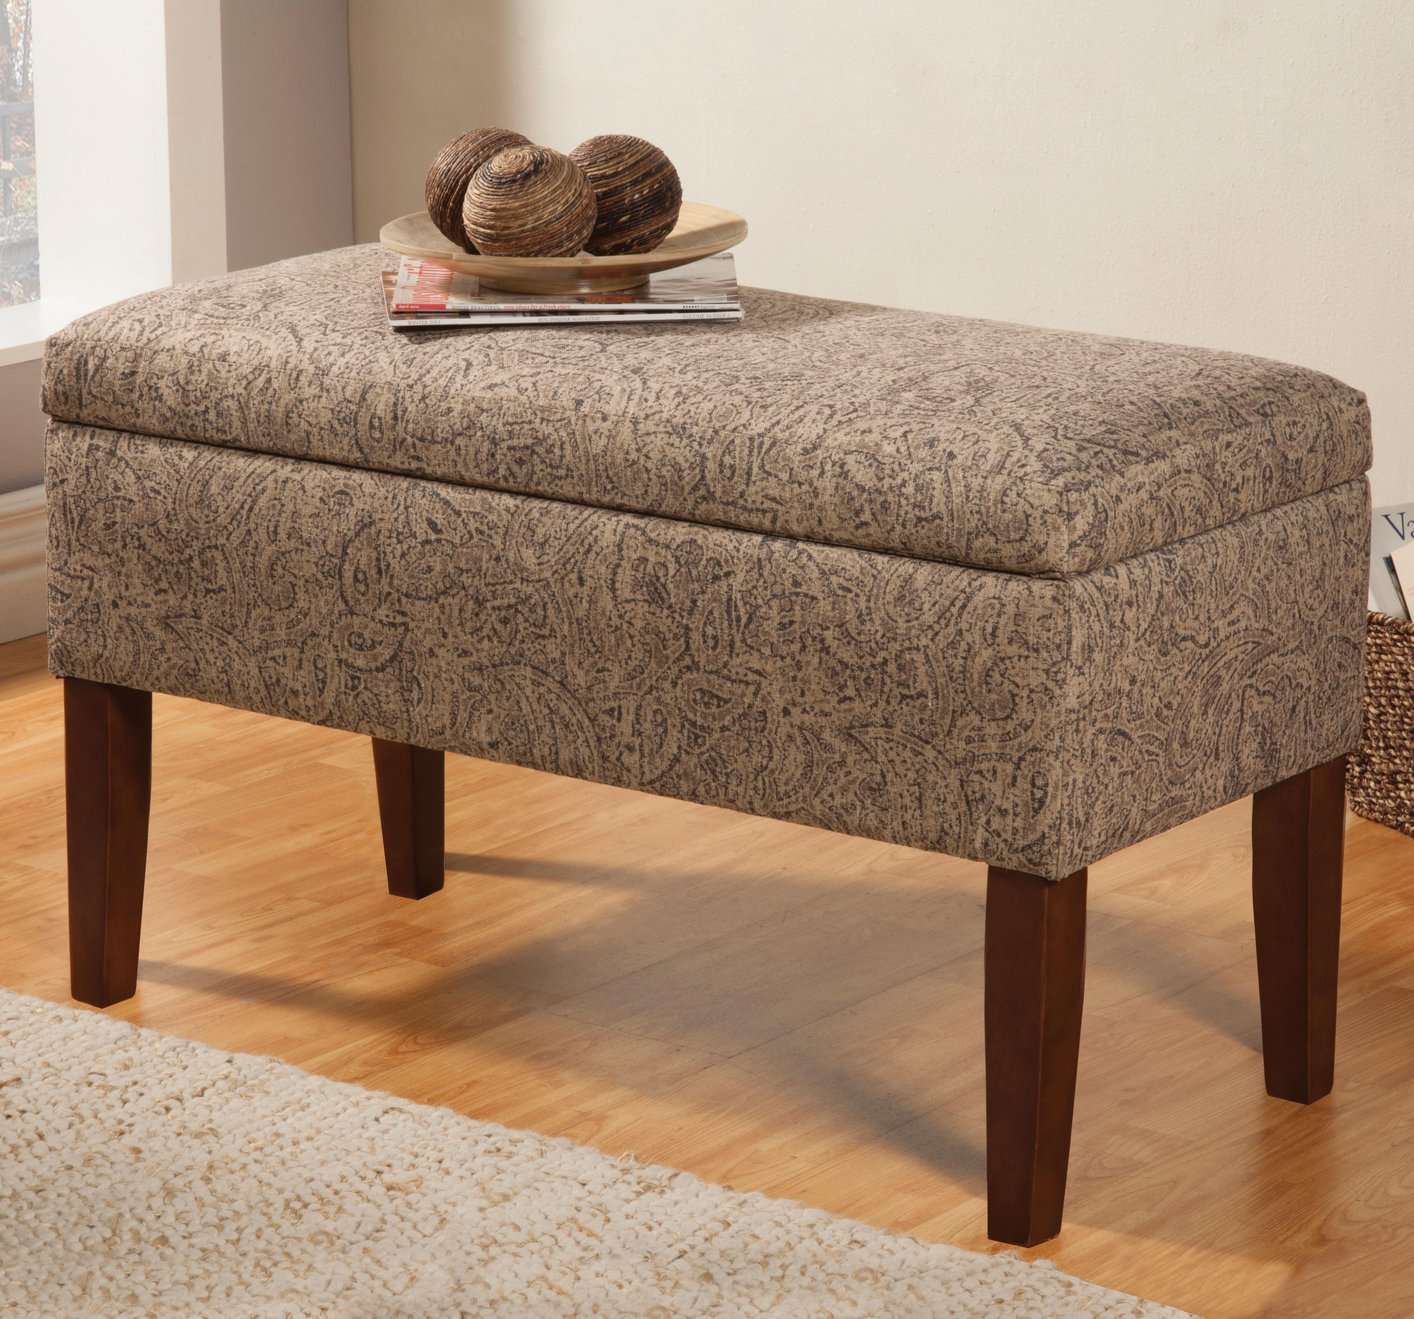 Beige Fabric Storage Bench Steal A Sofa Furniture Outlet